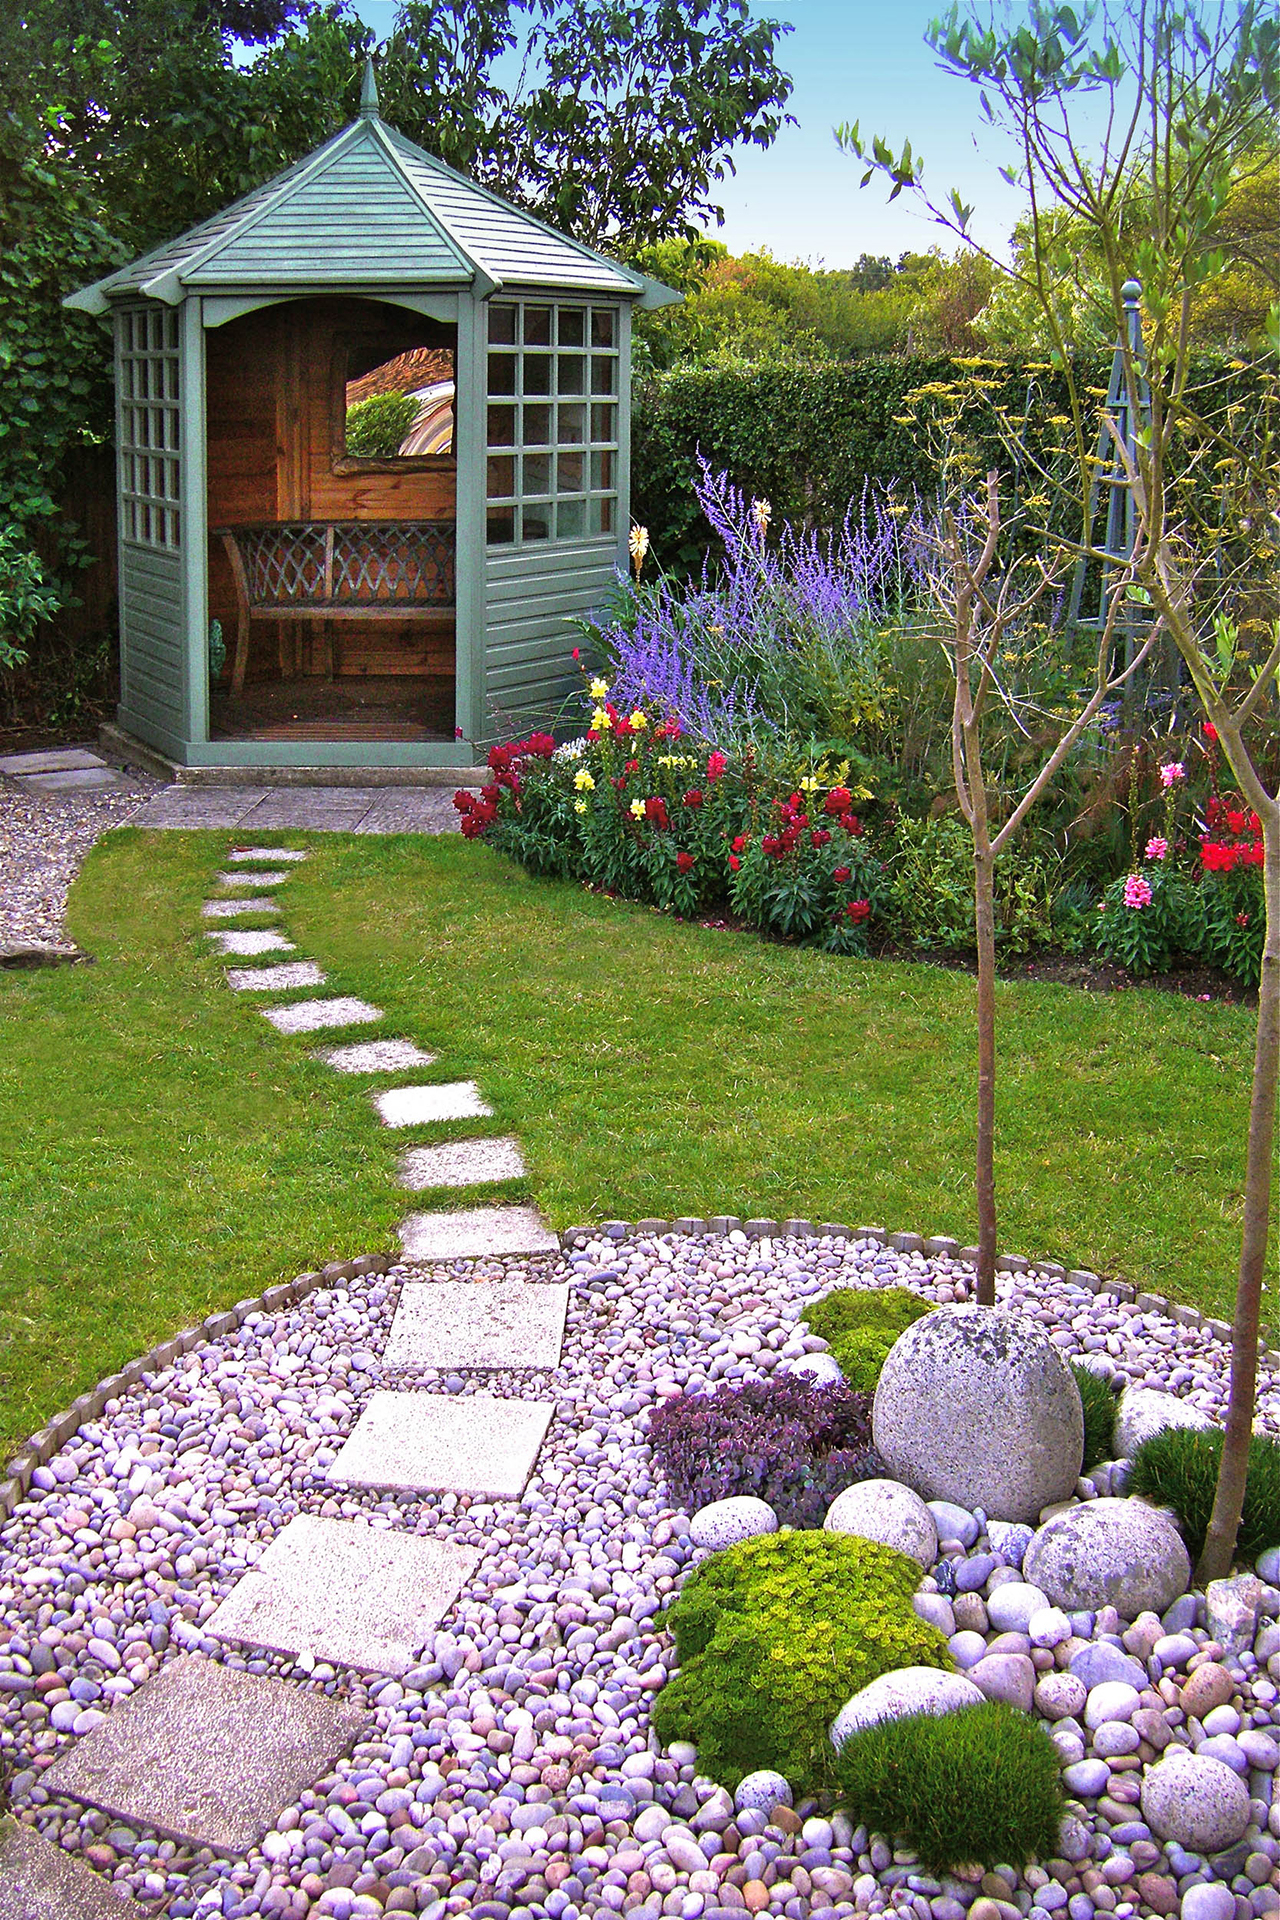 50 Best Backyard Landscaping Ideas And Designs In 2019 in 10 Clever Initiatives of How to Upgrade Ideas For Landscaping Backyard